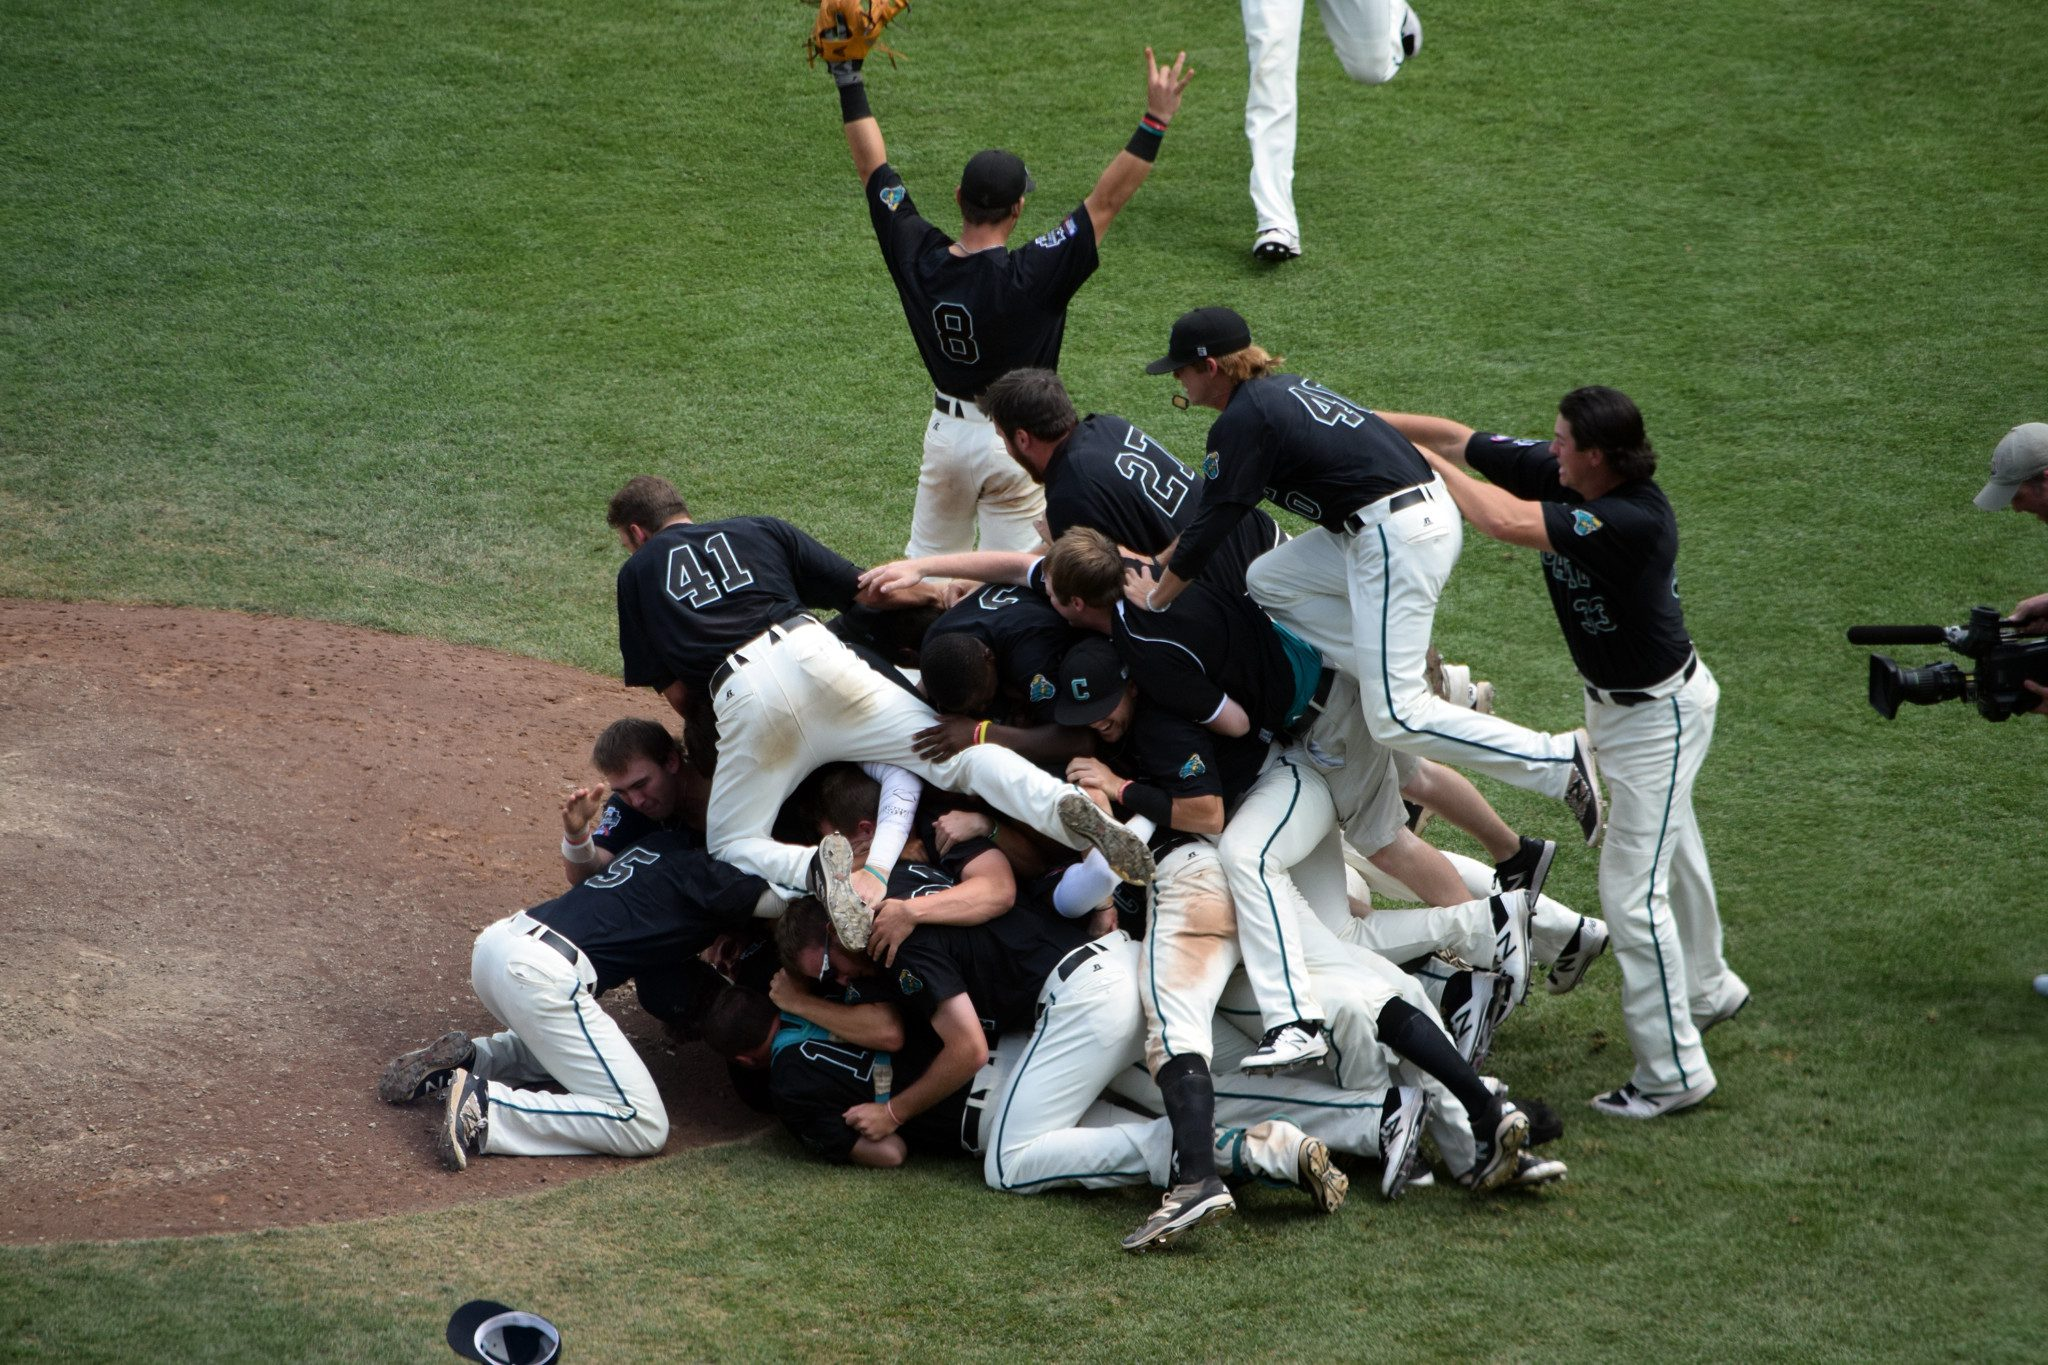 Coastal Carolina finished off a memorable run in Omaha. (Kendall Rogers)